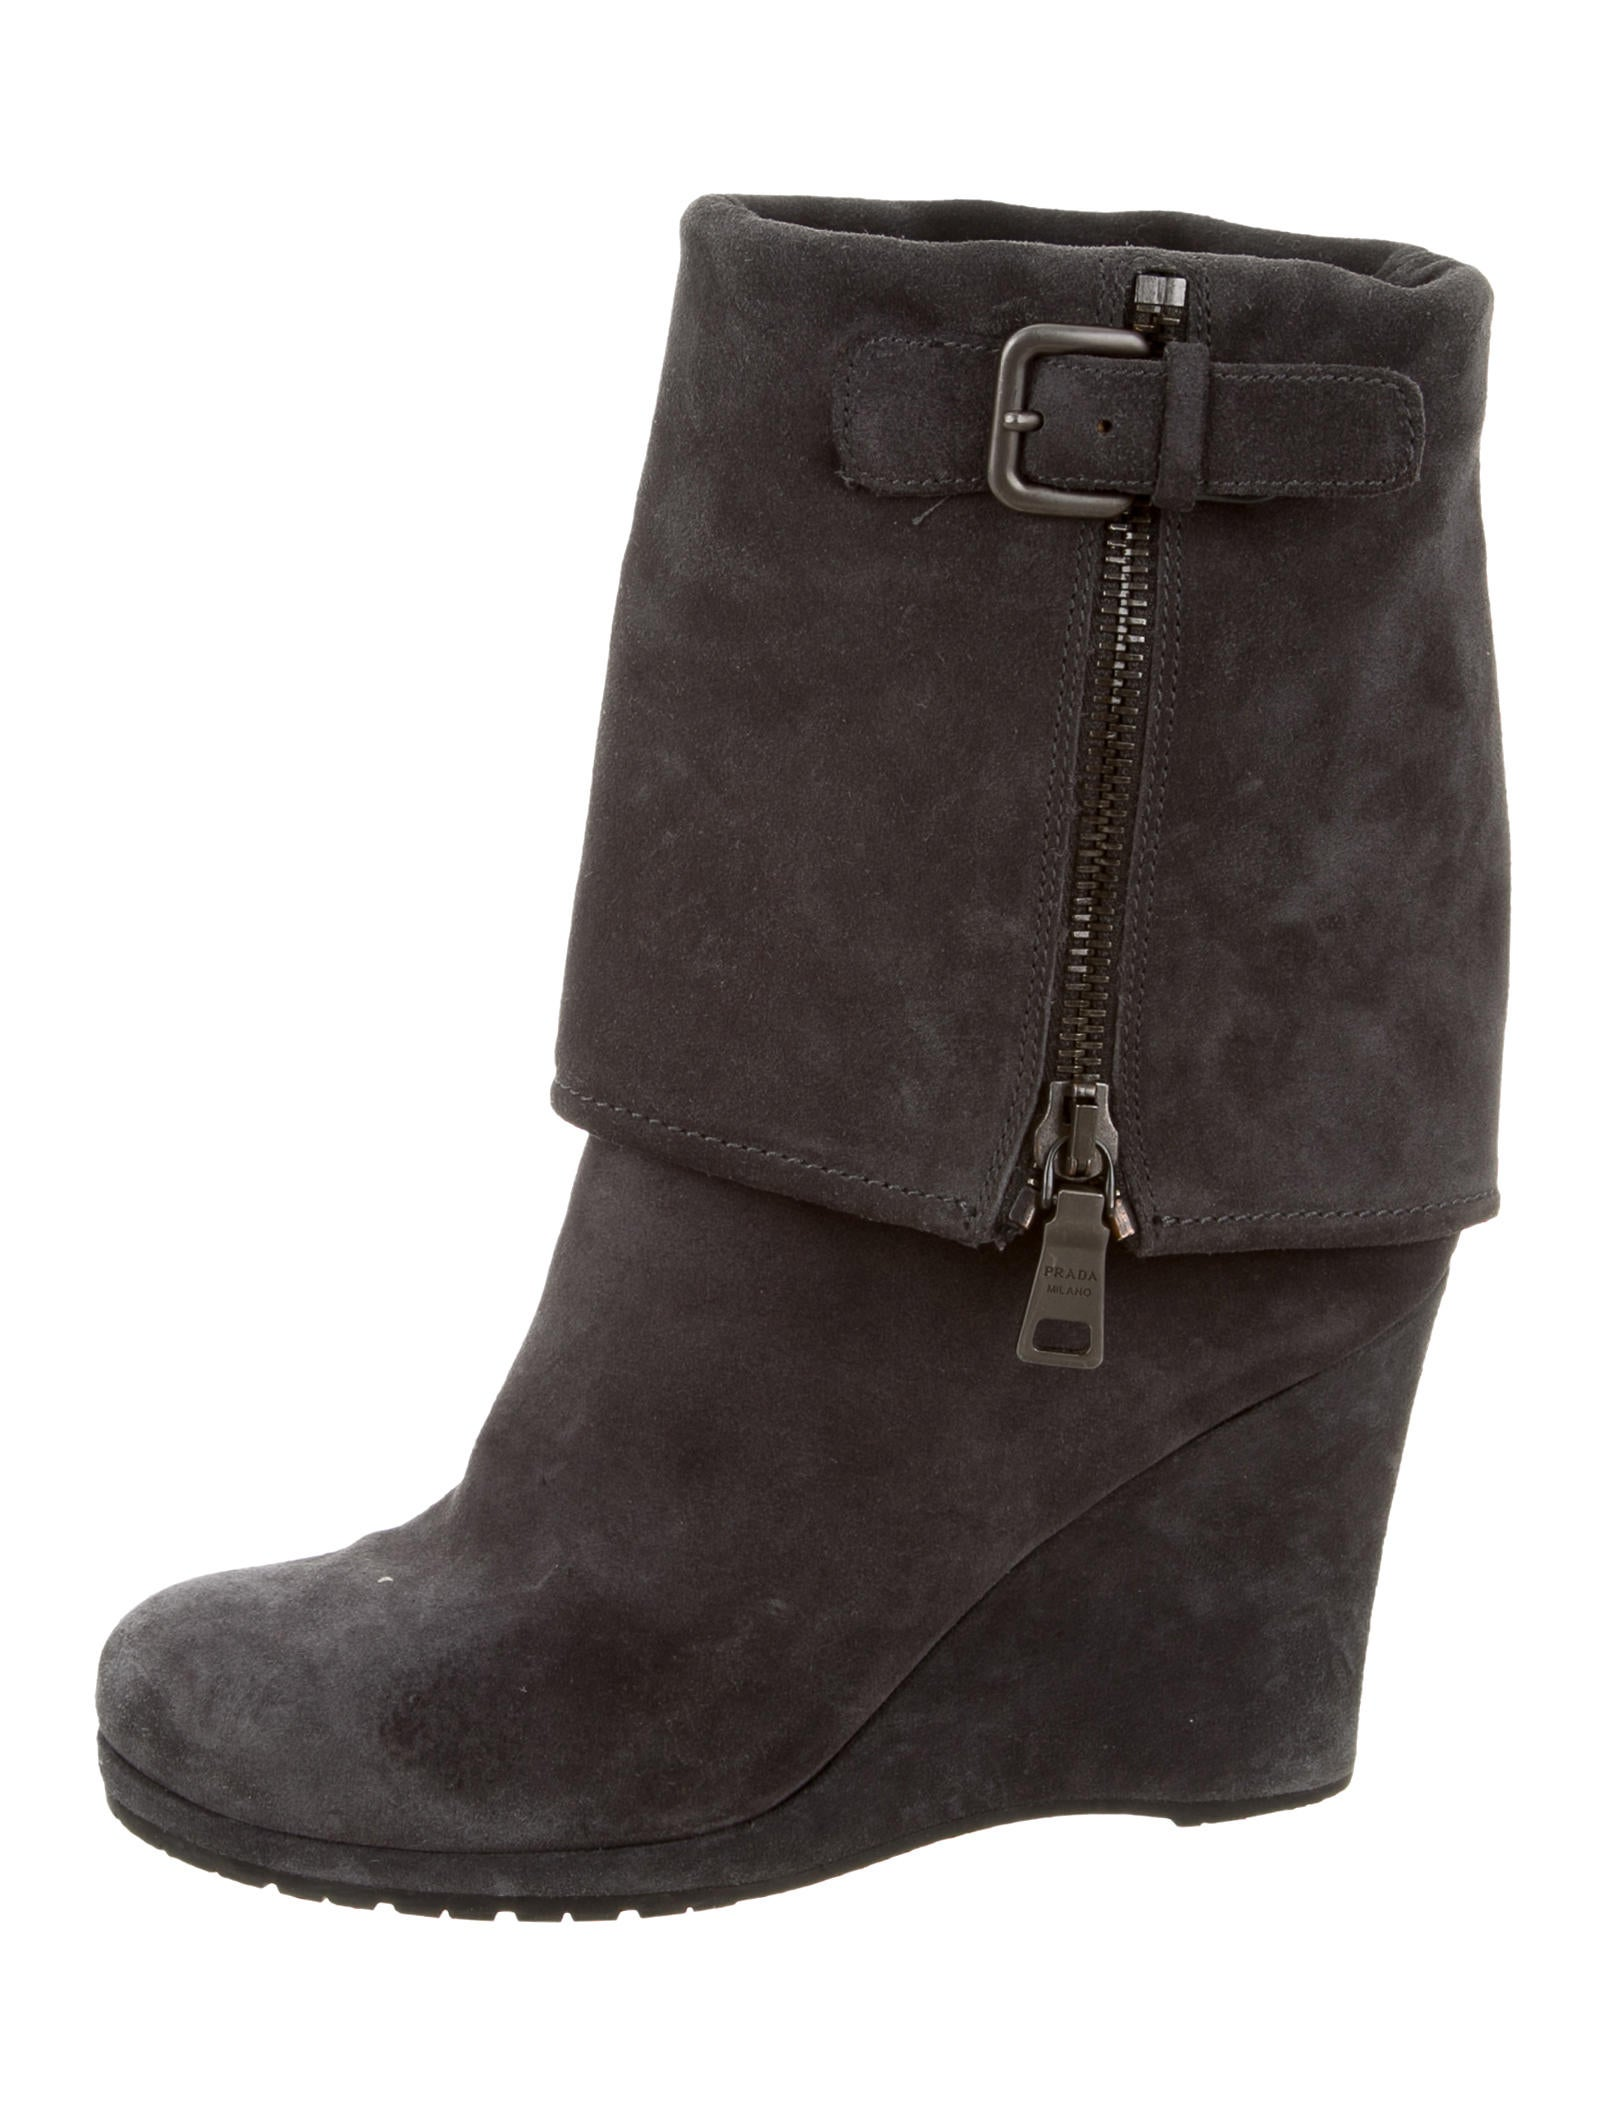 prada sport wedge ankle boots shoes wpr38801 the